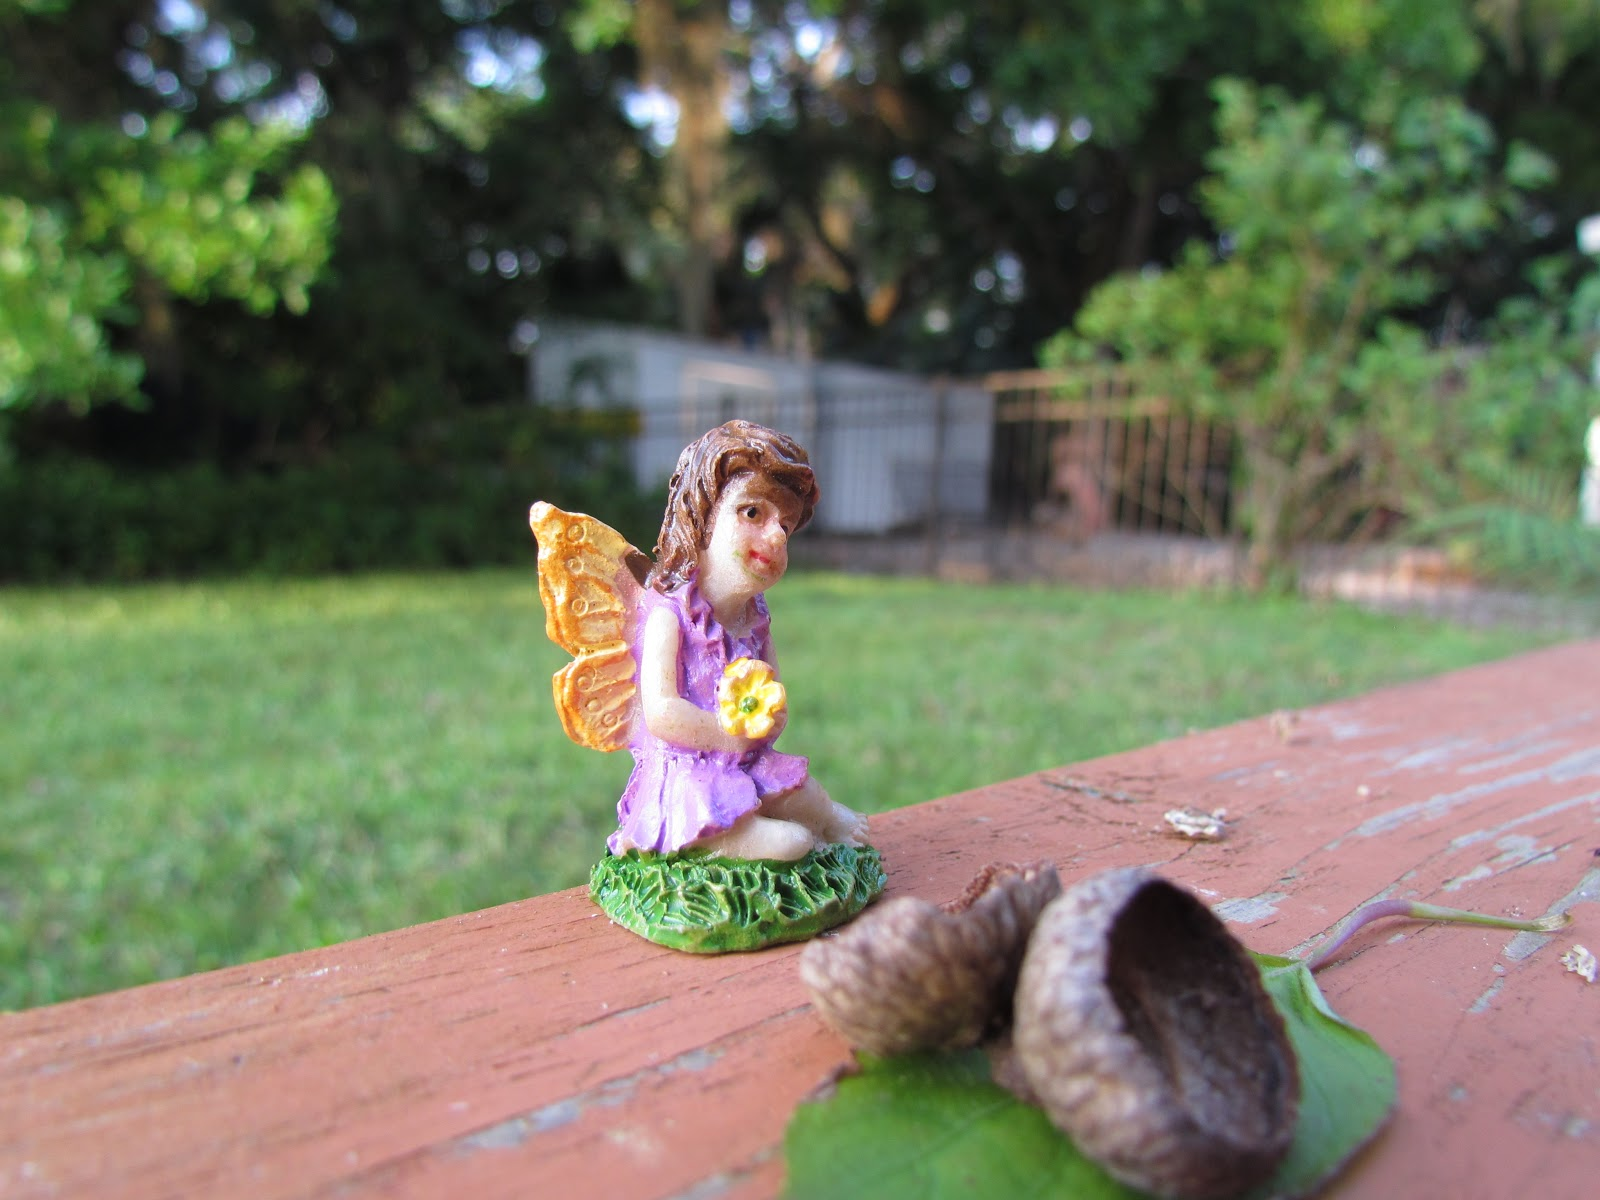 A tiny dark-haired fairy statue in purple garb with flowers sitting on the back porch with an acorn in nature